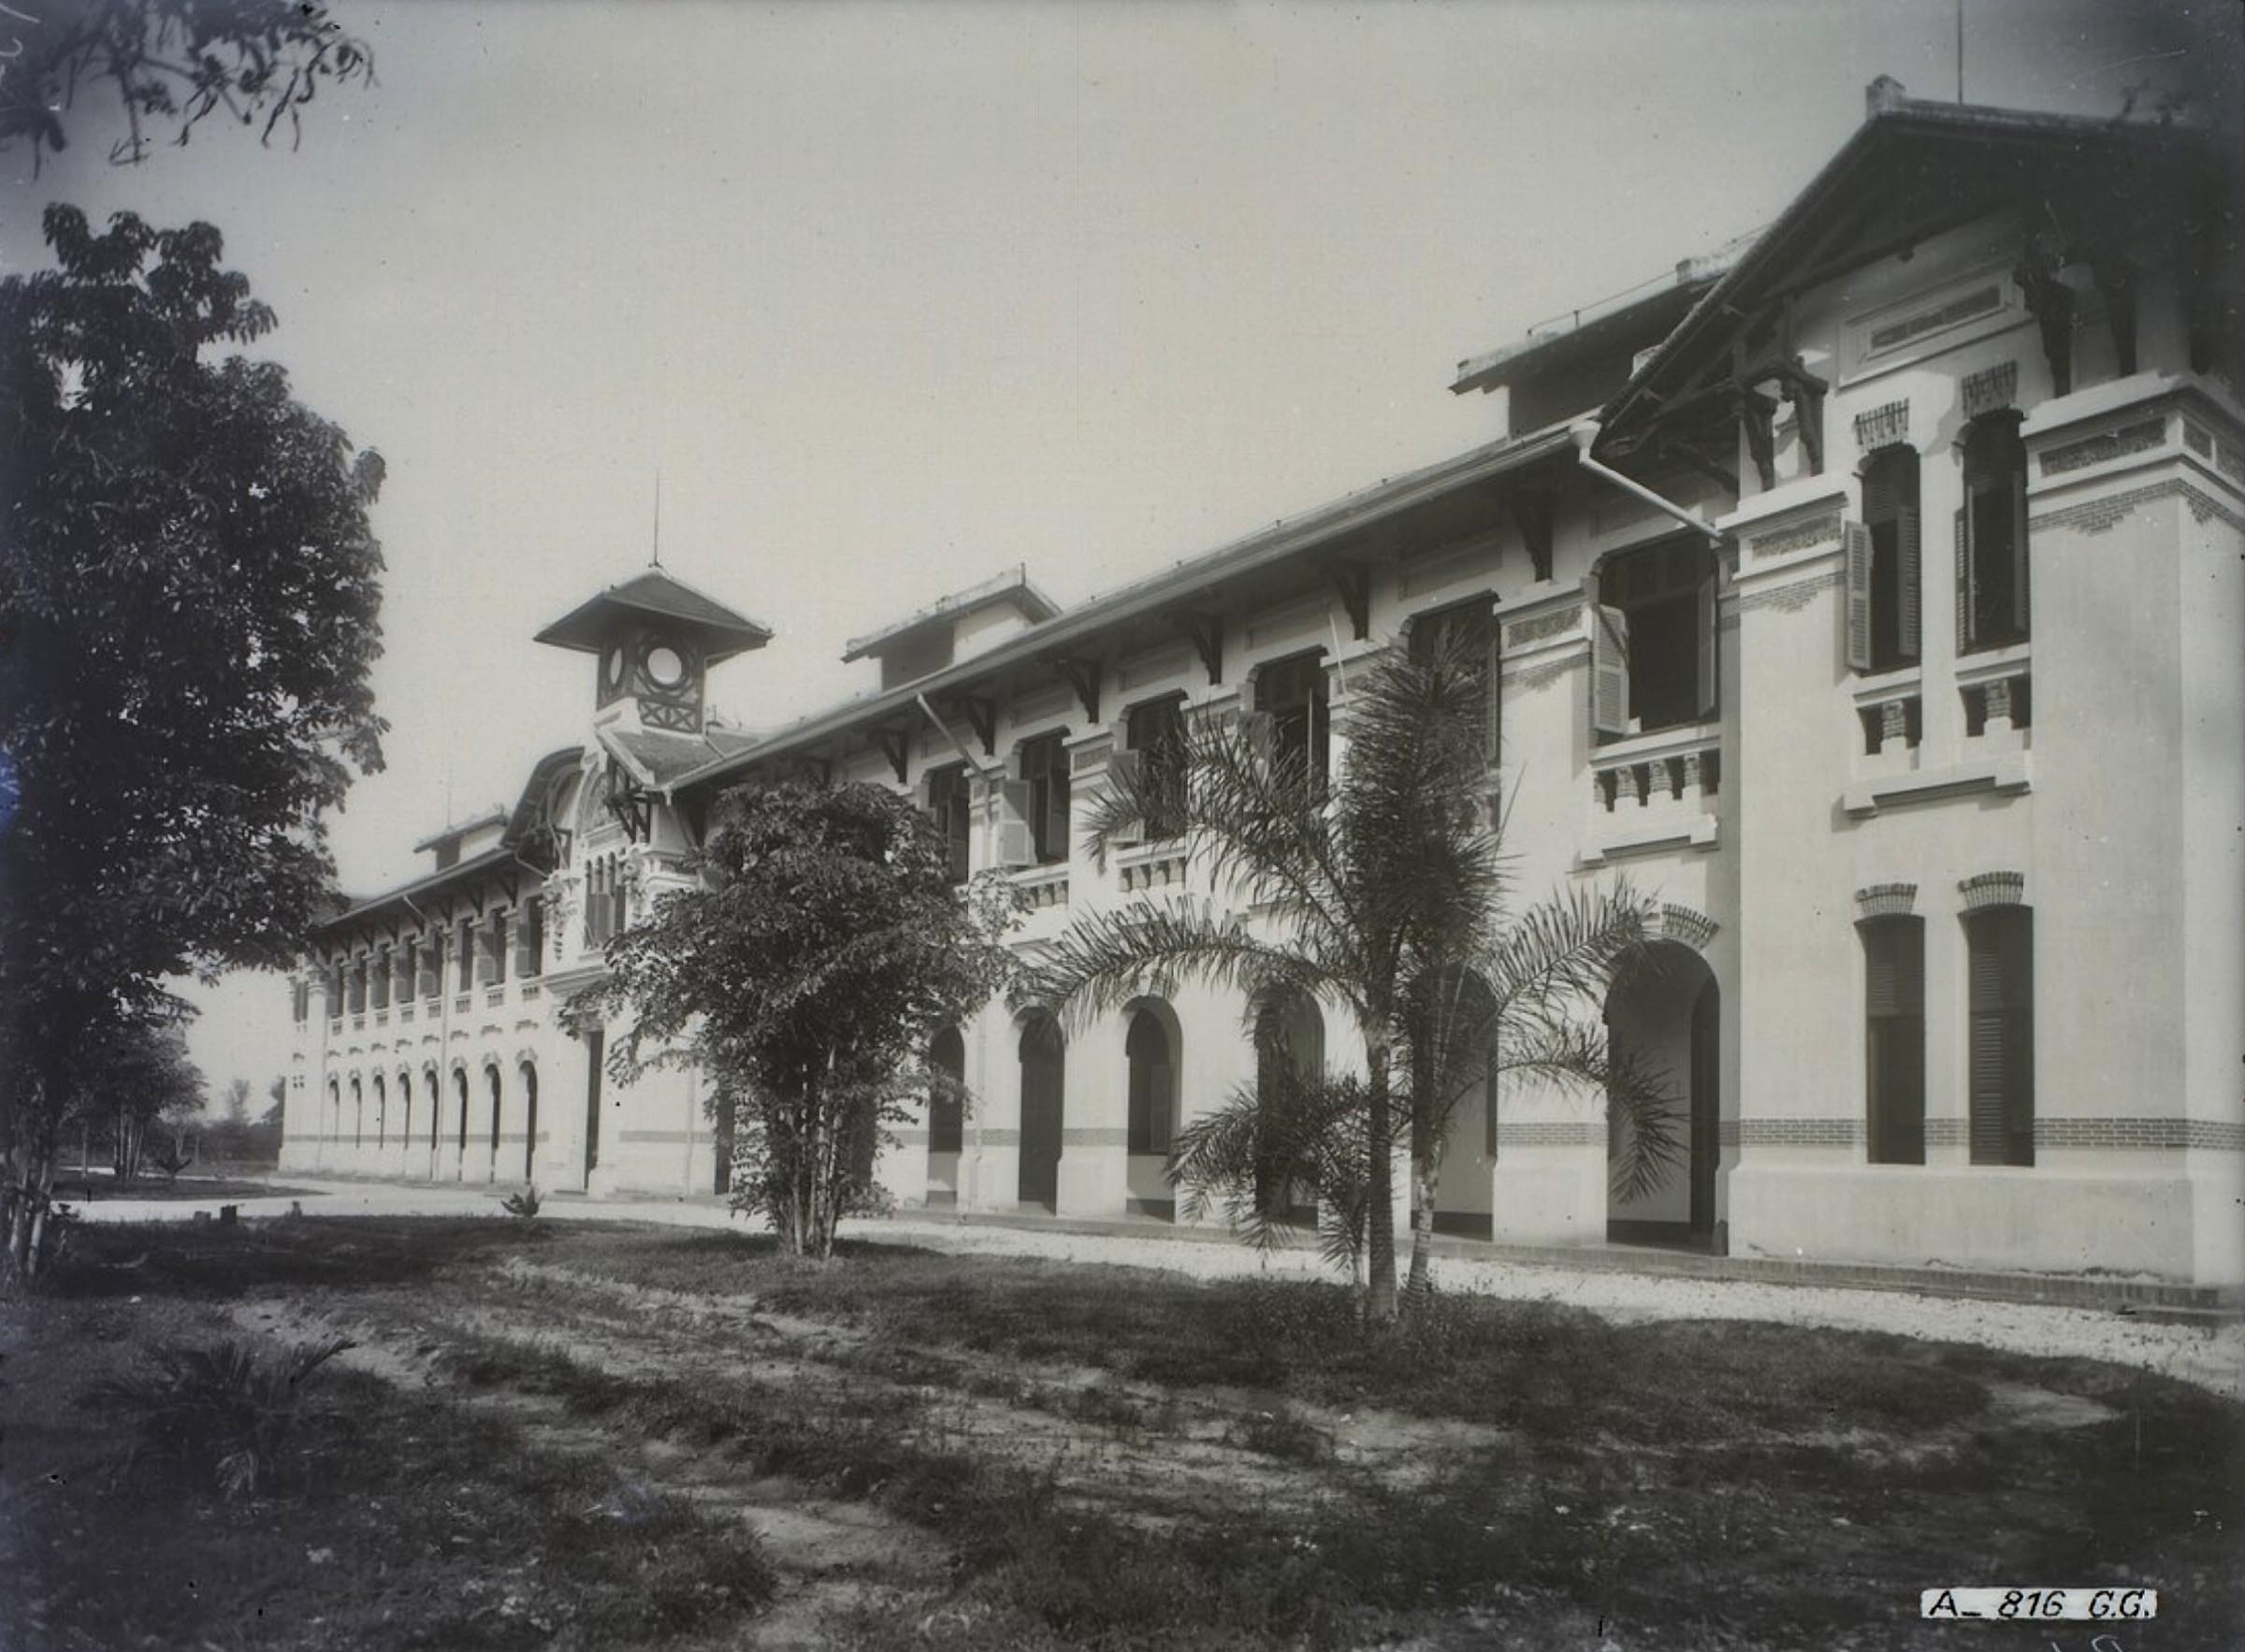 Loat anh doc ve cac truong hoc o Sai Gon thap nien 1920-Hinh-9